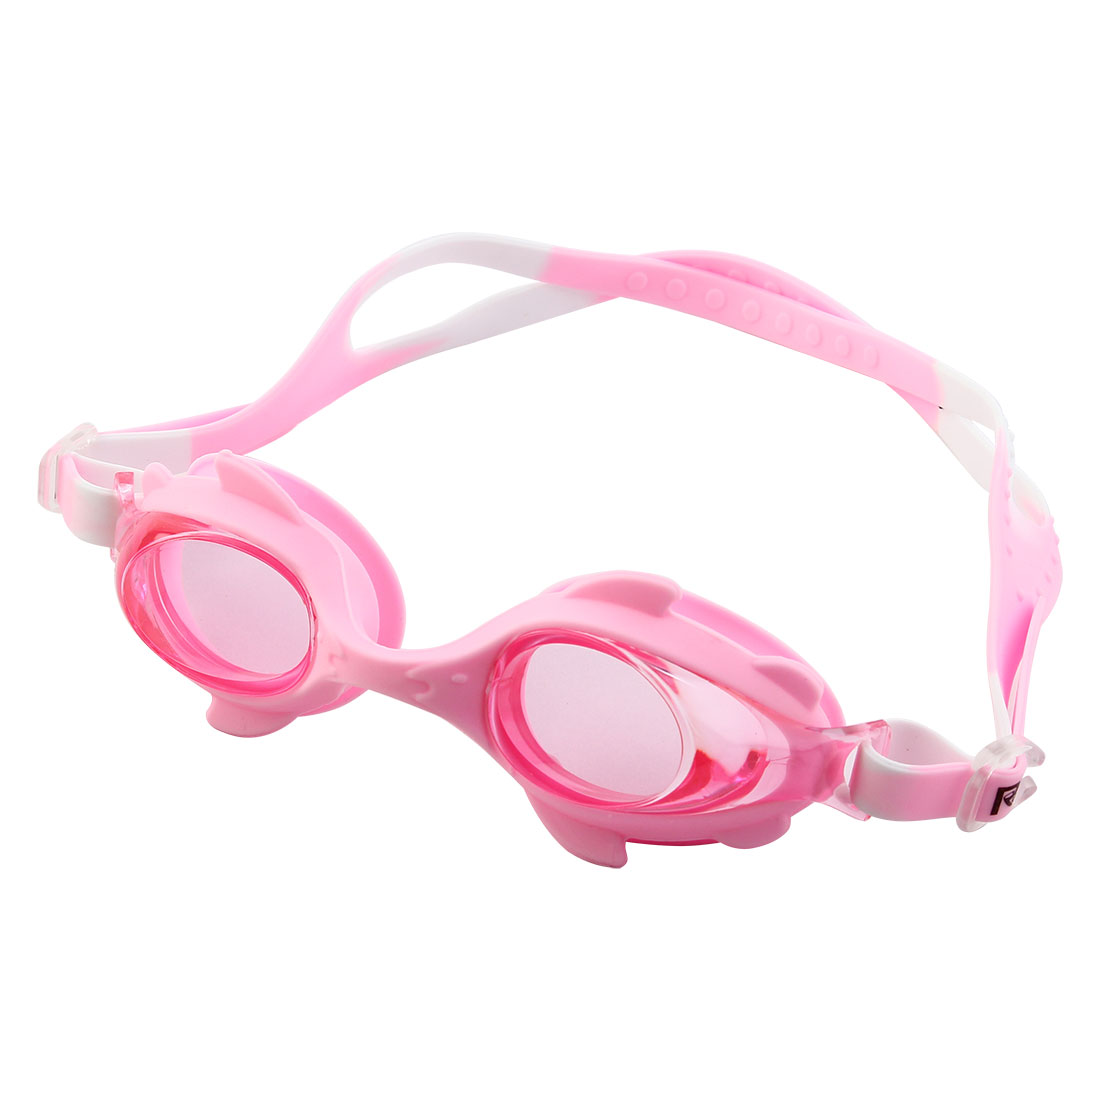 Clear Vision Anti Fog Adjustable Belt Swim Glasses Swimming Goggles Pink w Storage Case for Youth Children